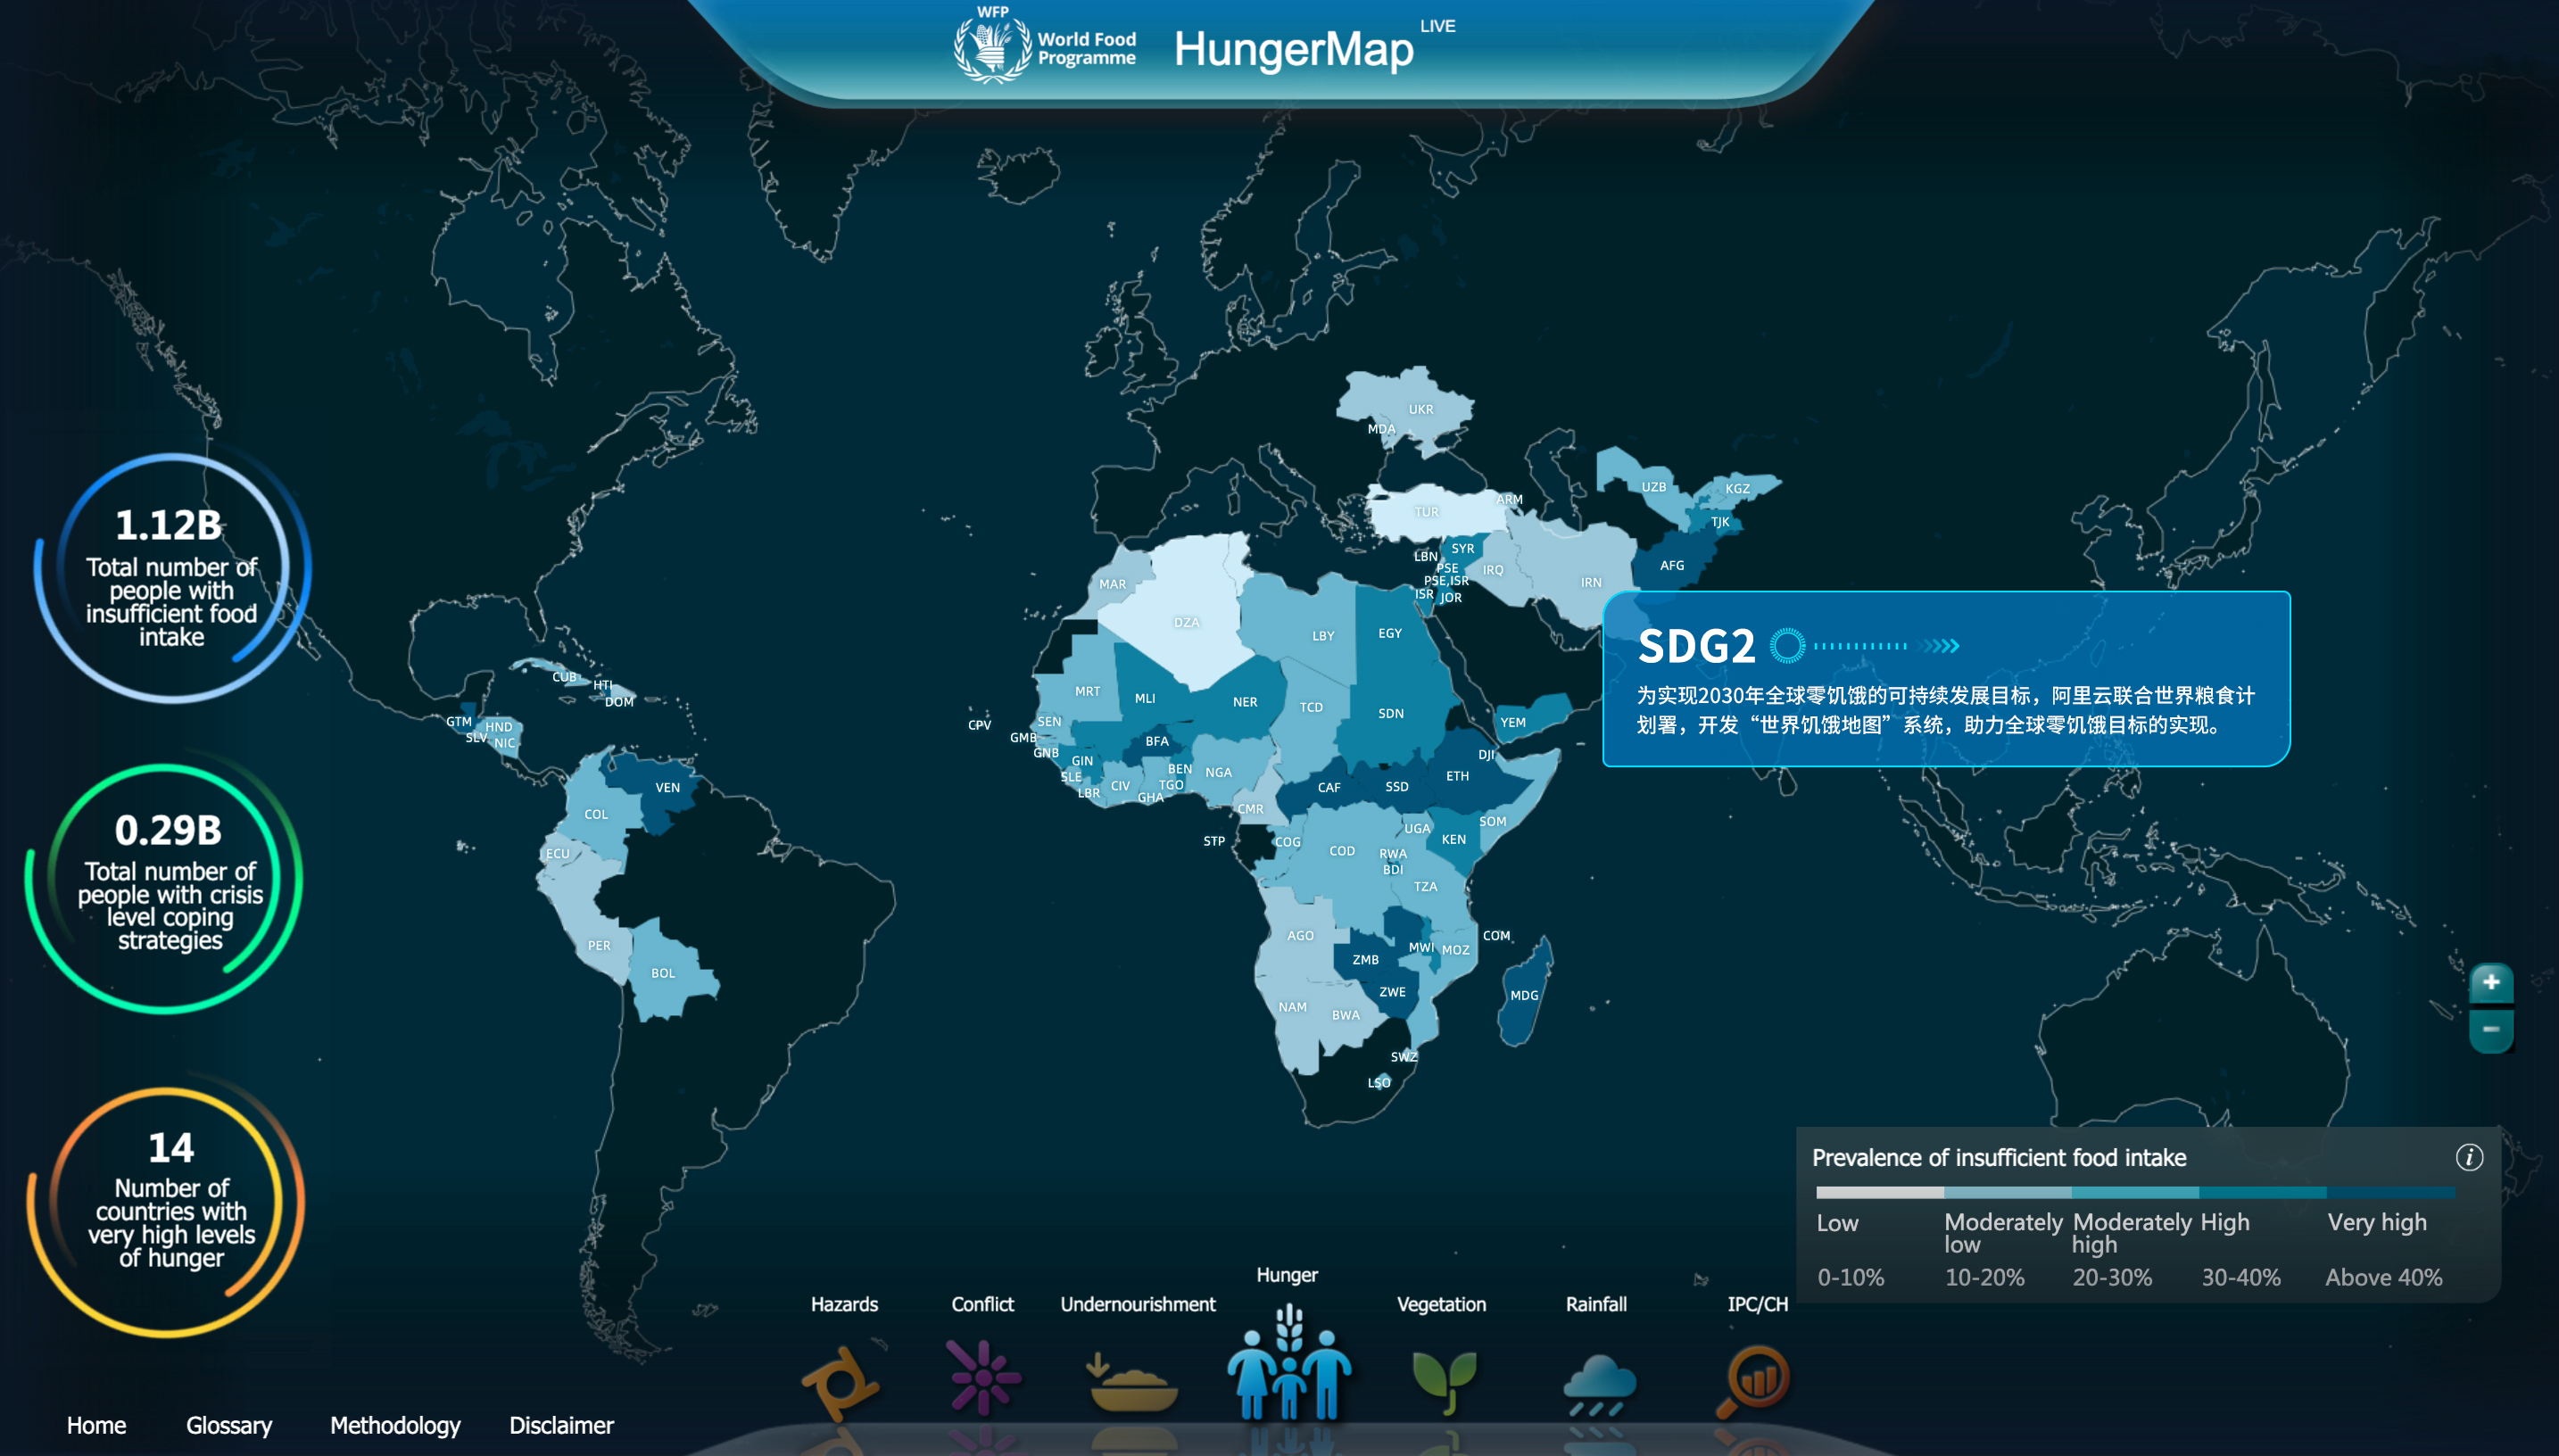 hunger map wfp alibaba cloud 092519